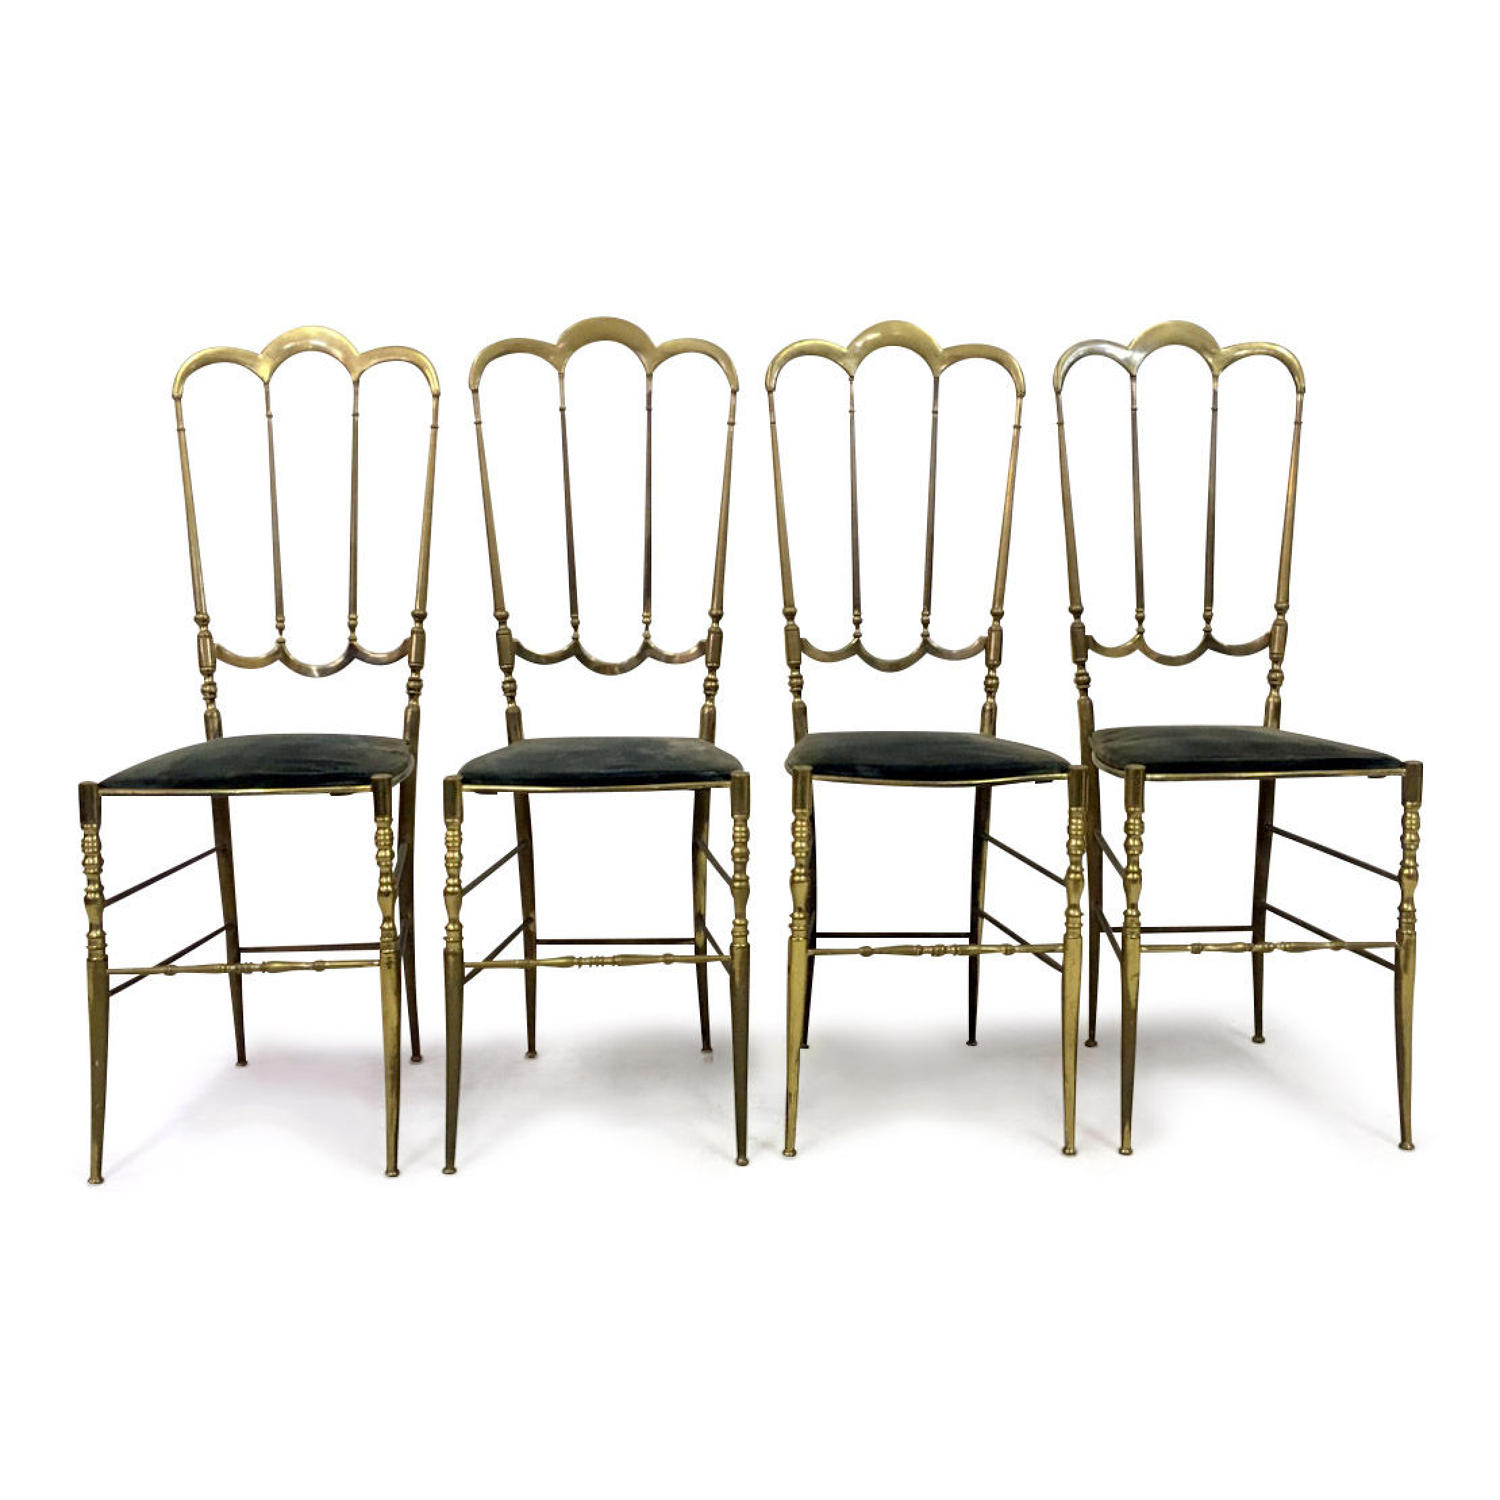 A set of four brass Chiavari side chairs